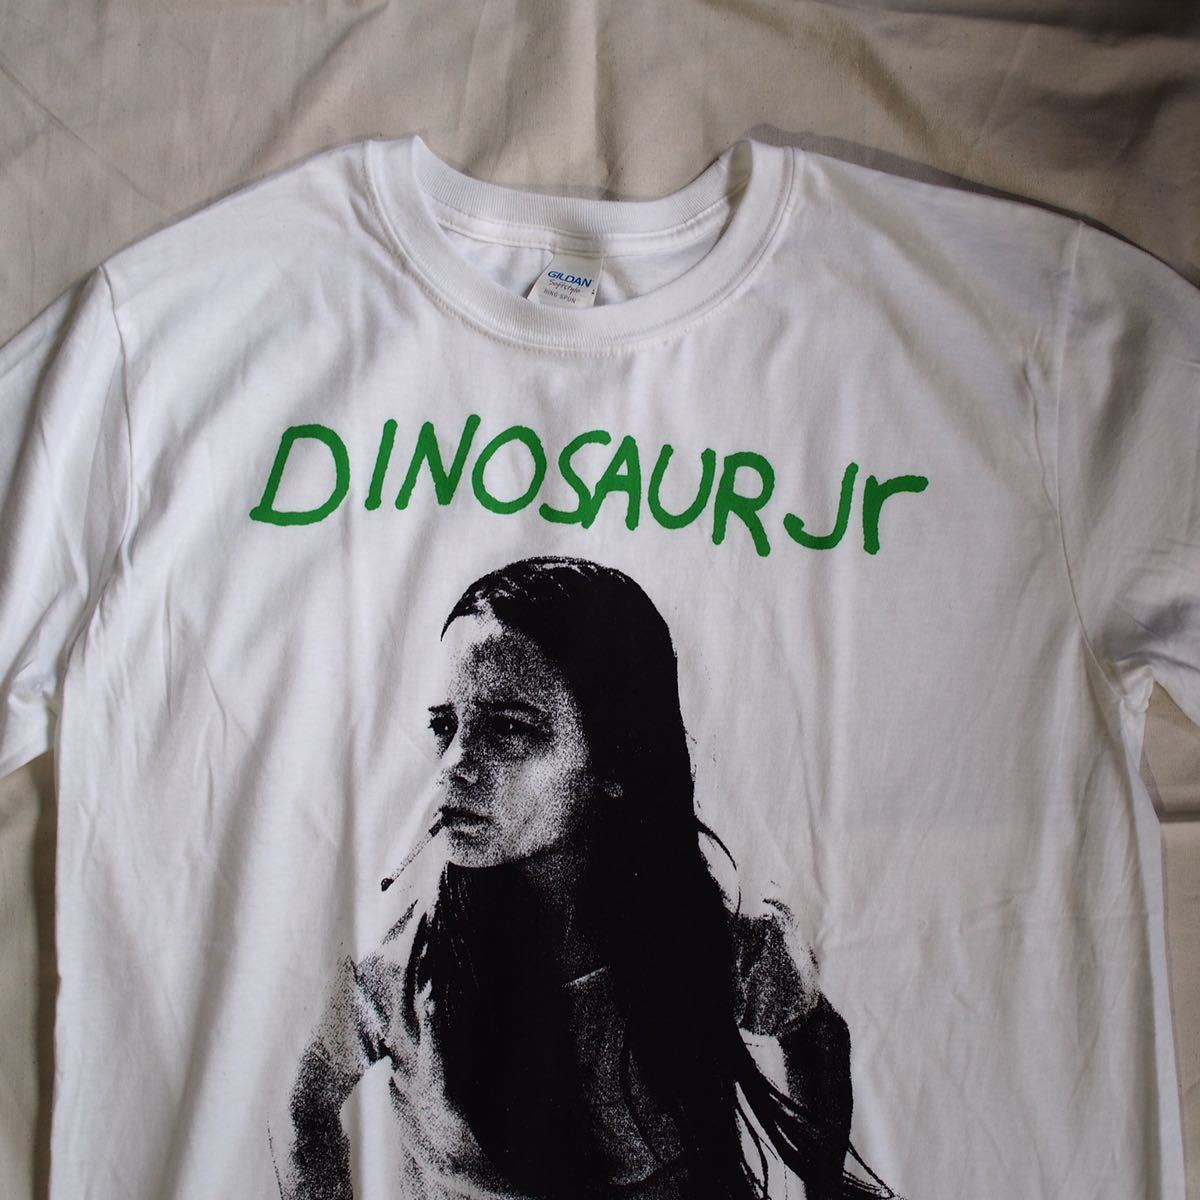 Official [Dinosaur Jr.]L ダイナソージュニア Tシャツ バンド Nirvana Blur Sonic Youth oasis joy division Stone Roses The Cure_画像2